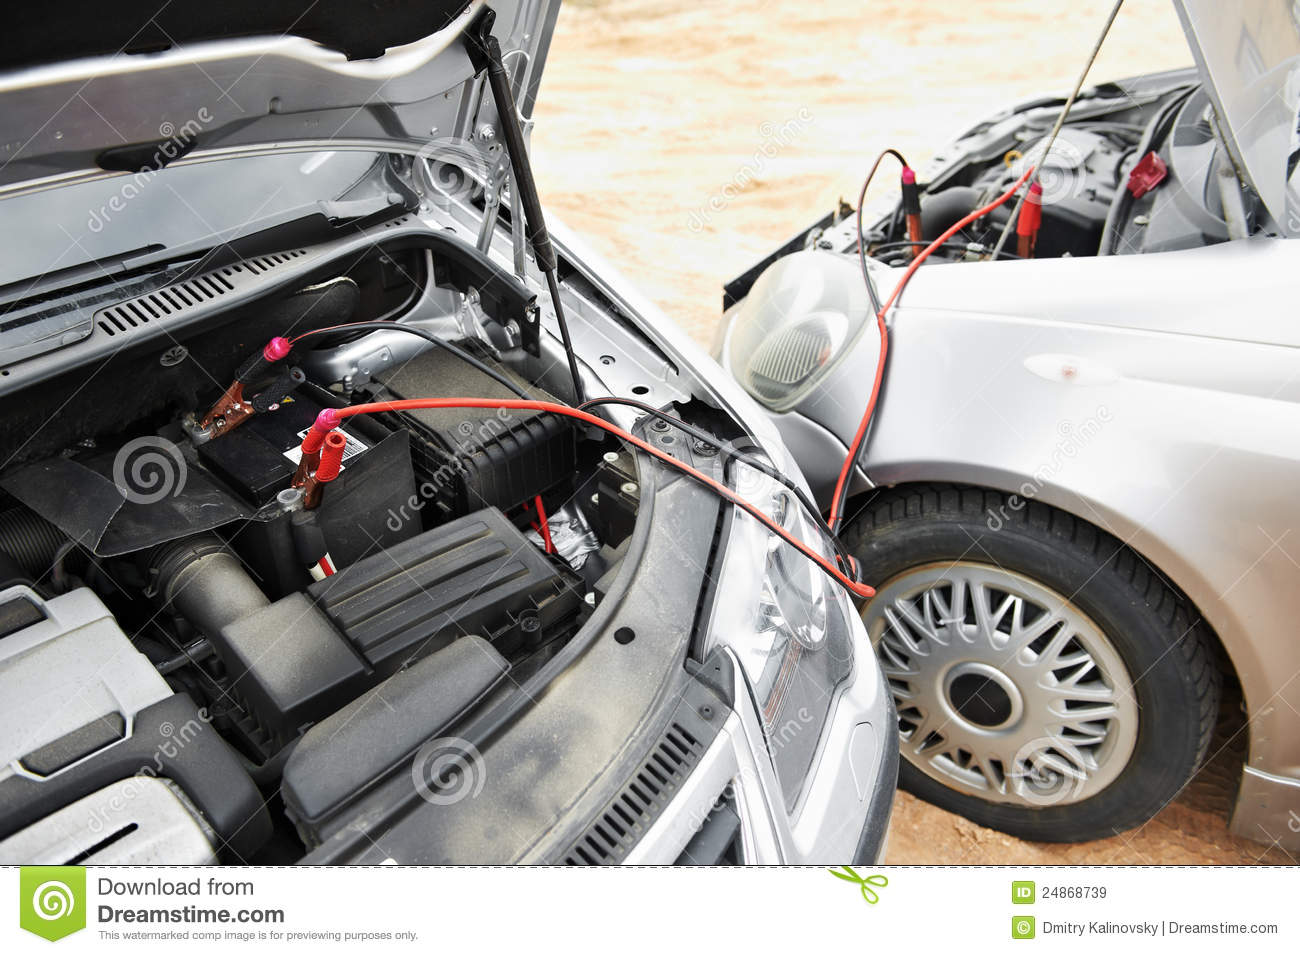 Built In Vehicle Jumper Cables : Starting car engine with battery jumper cables stock image